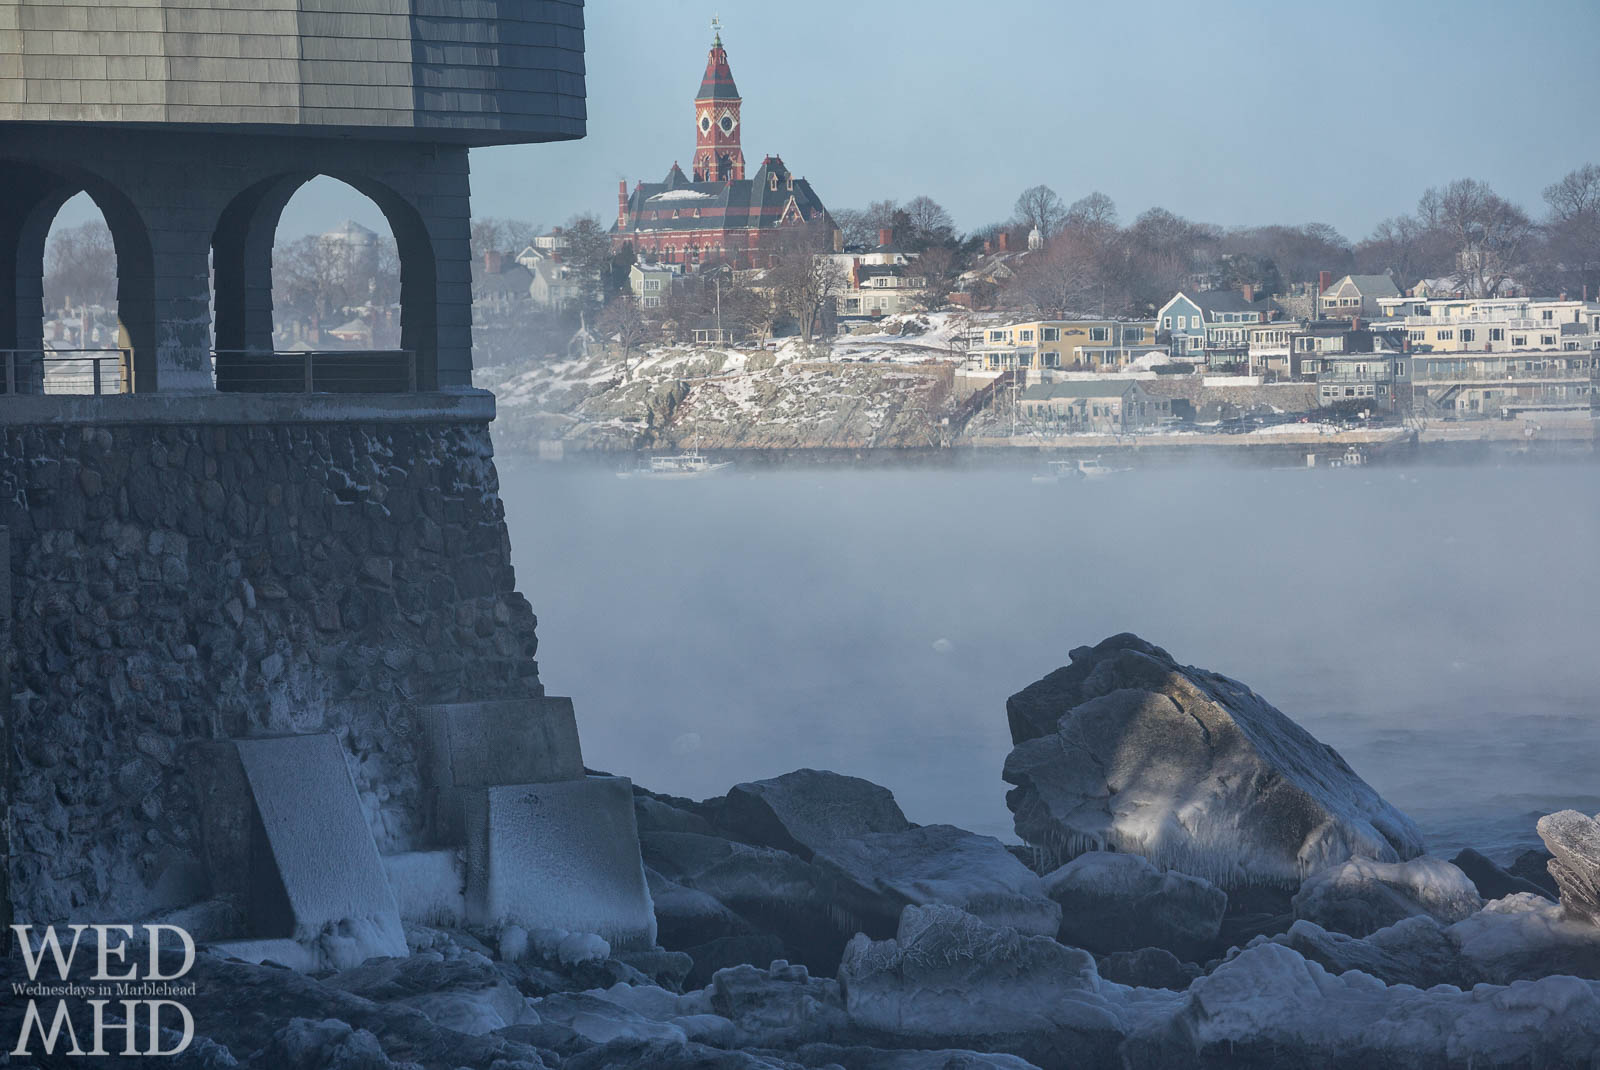 Rime ice forms along the base of the Corinthian Yacht Club with sea smoke creating fog in Marblehead Harbor